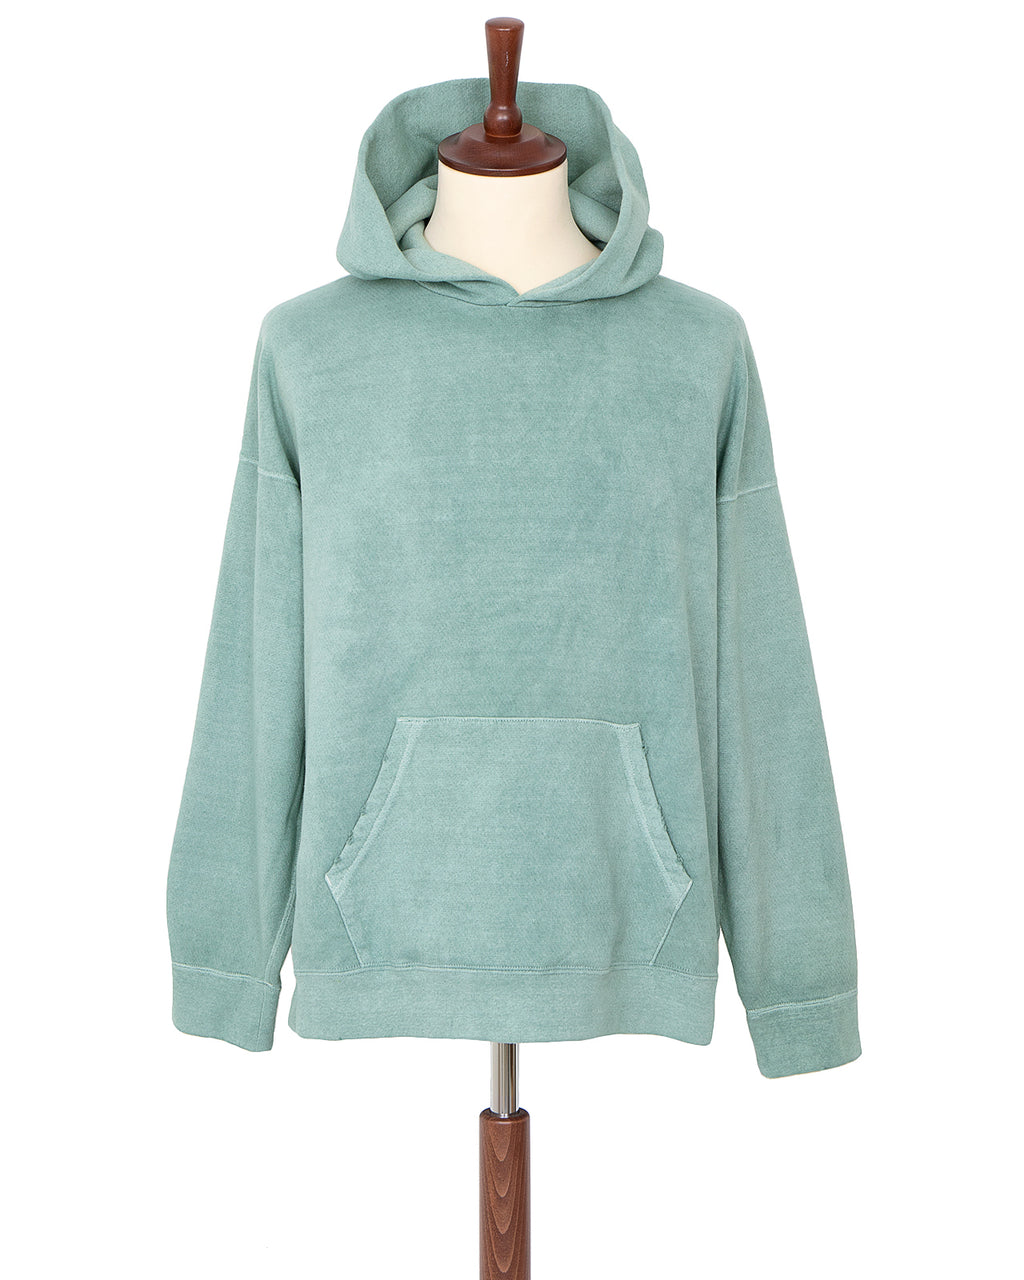 Visvim Jumbo Hoodie P.O. Uneven Dye, Light Green